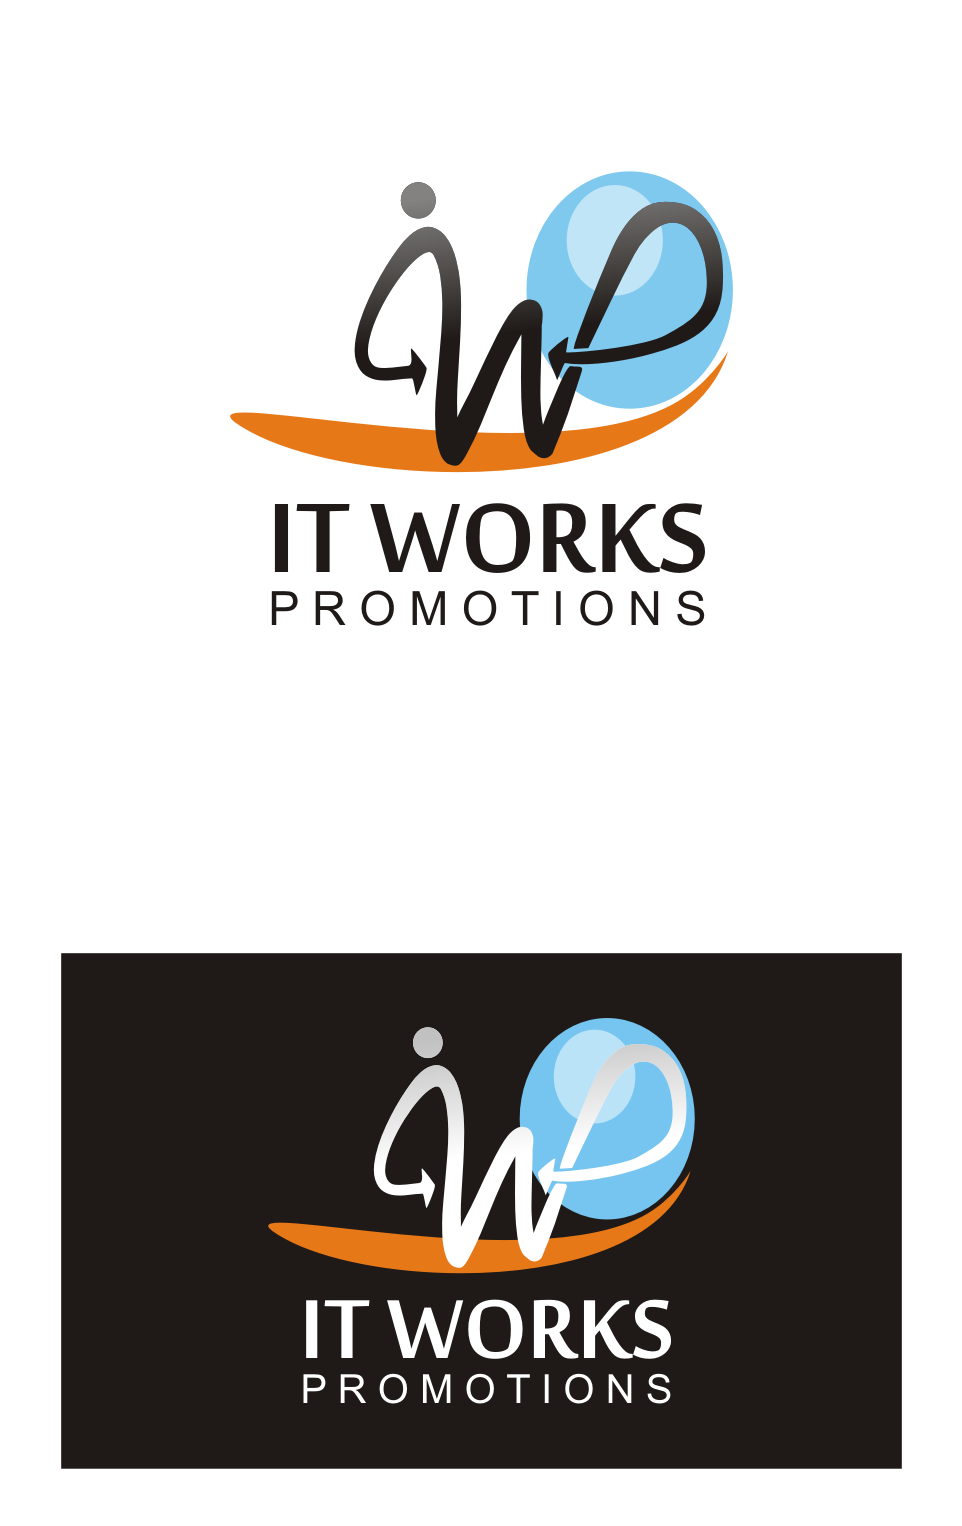 Logo Design by Nthus Nthis - Entry No. 167 in the Logo Design Contest Creative Logo Design for It Works Promotions.